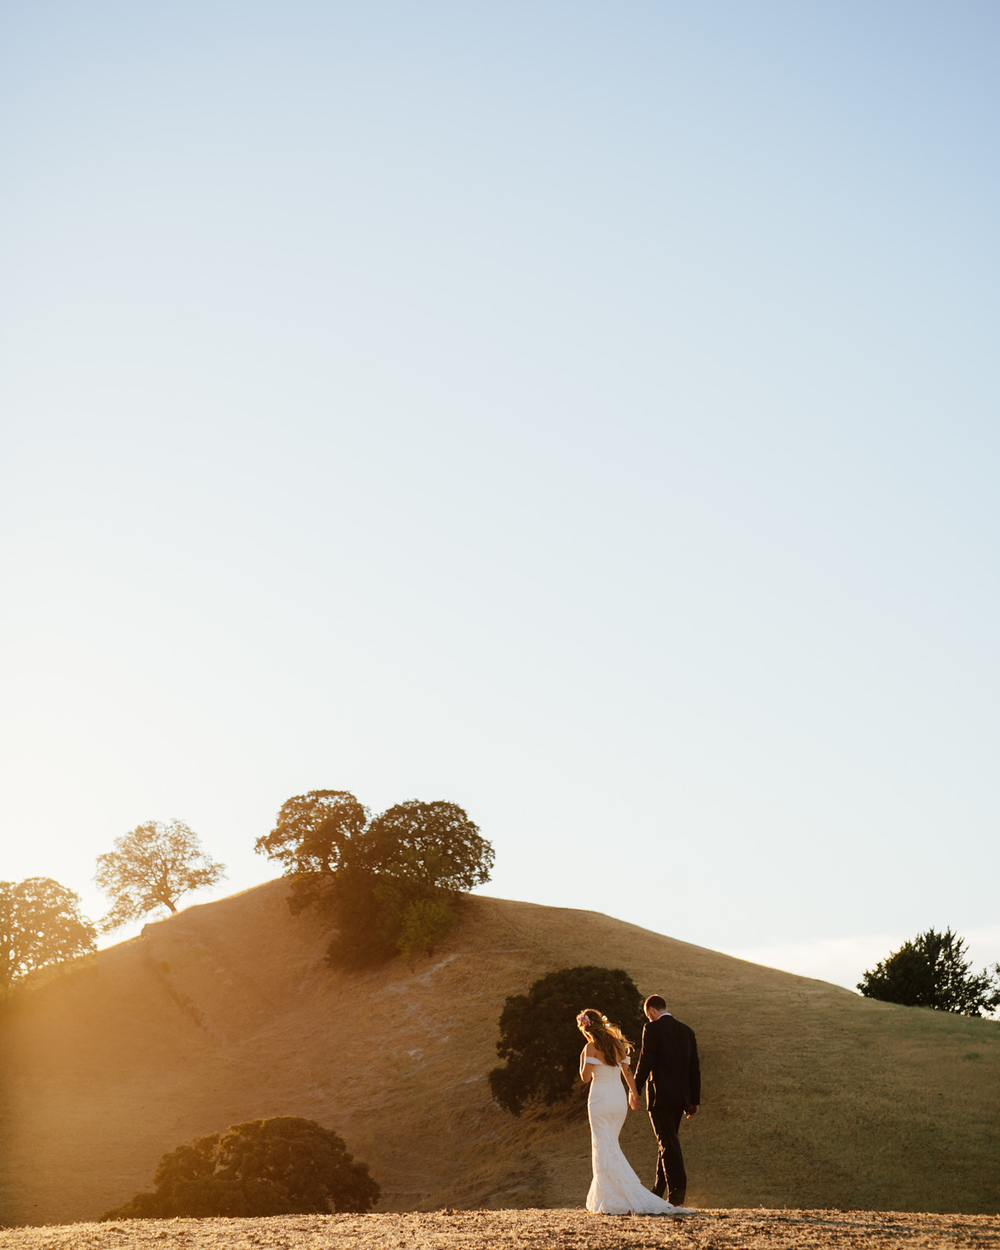 Napa Valley Vacaville Wedding Photographer - Hannah & Stephen - The Gathering Season x weareleoandkat 069.jpg